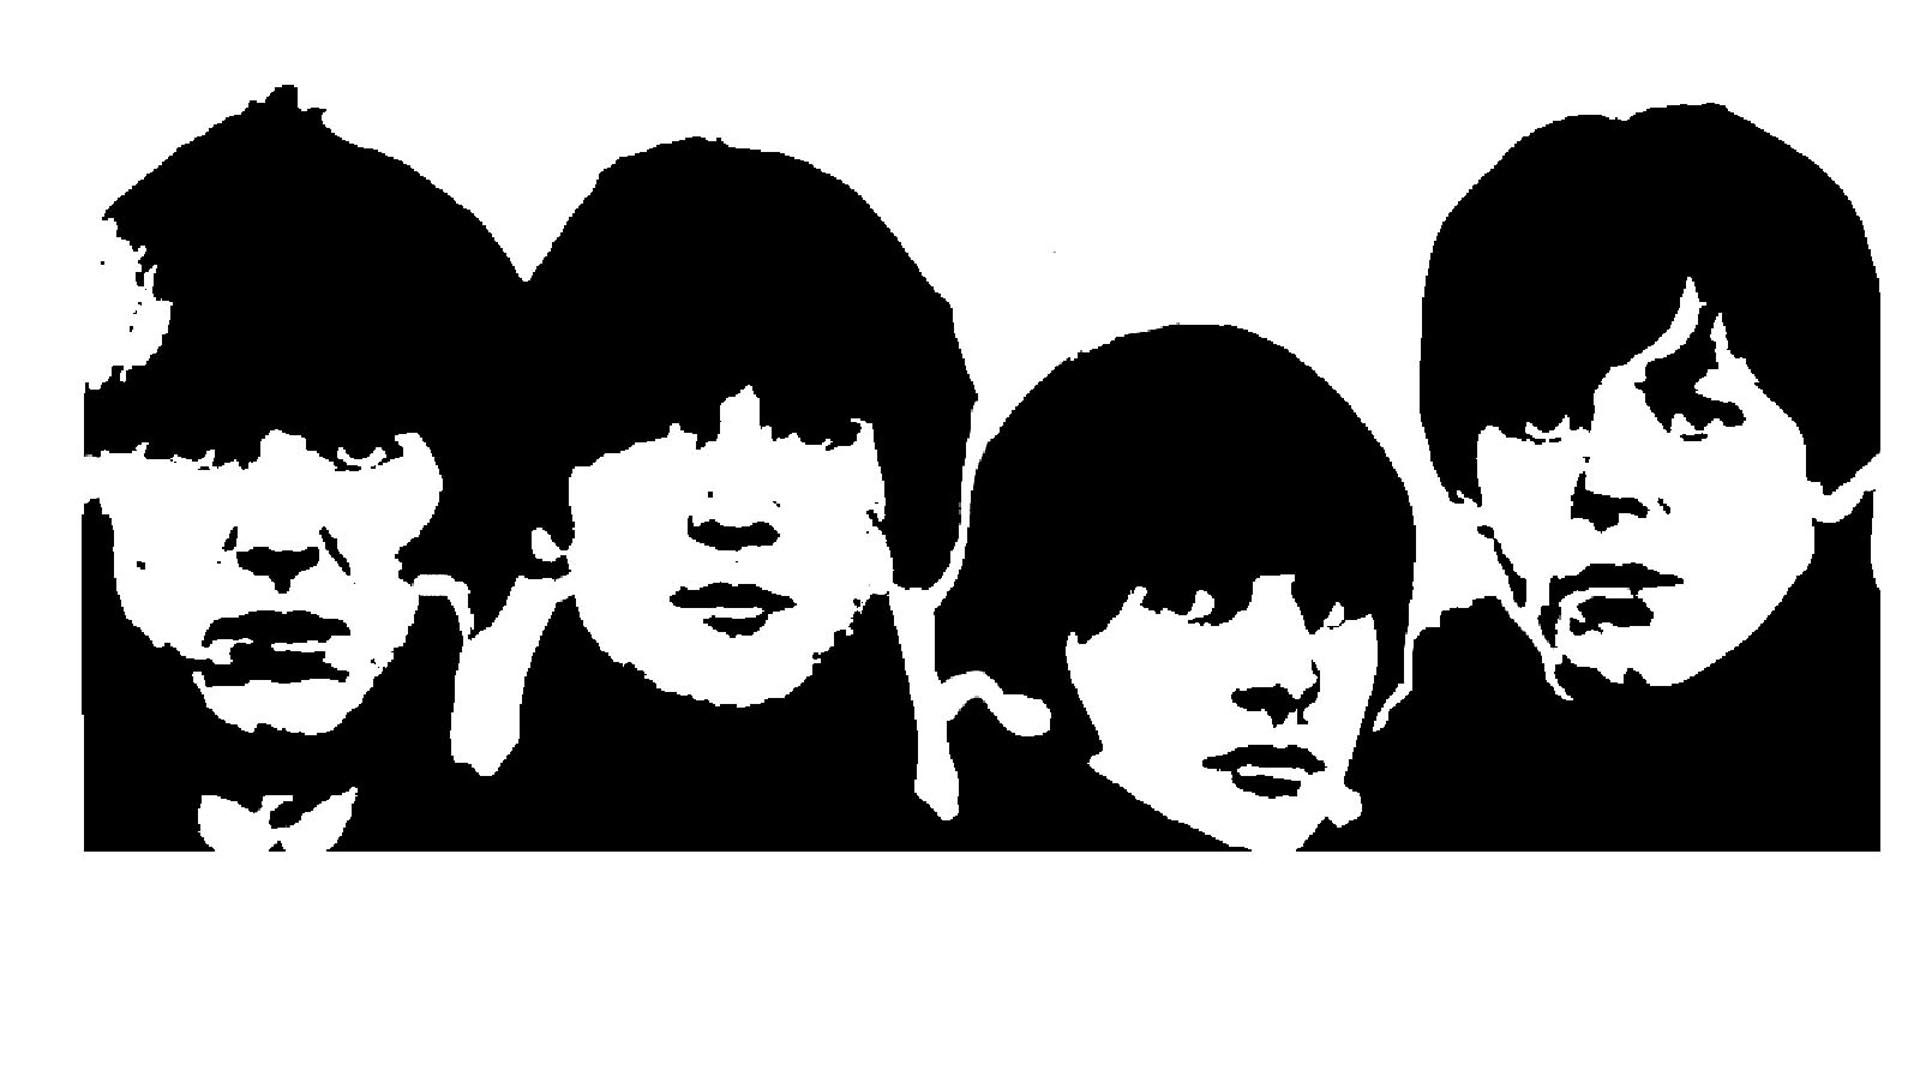 Google Image Result For Wfiles Brothersoft Com T The Beatles Rh Nz